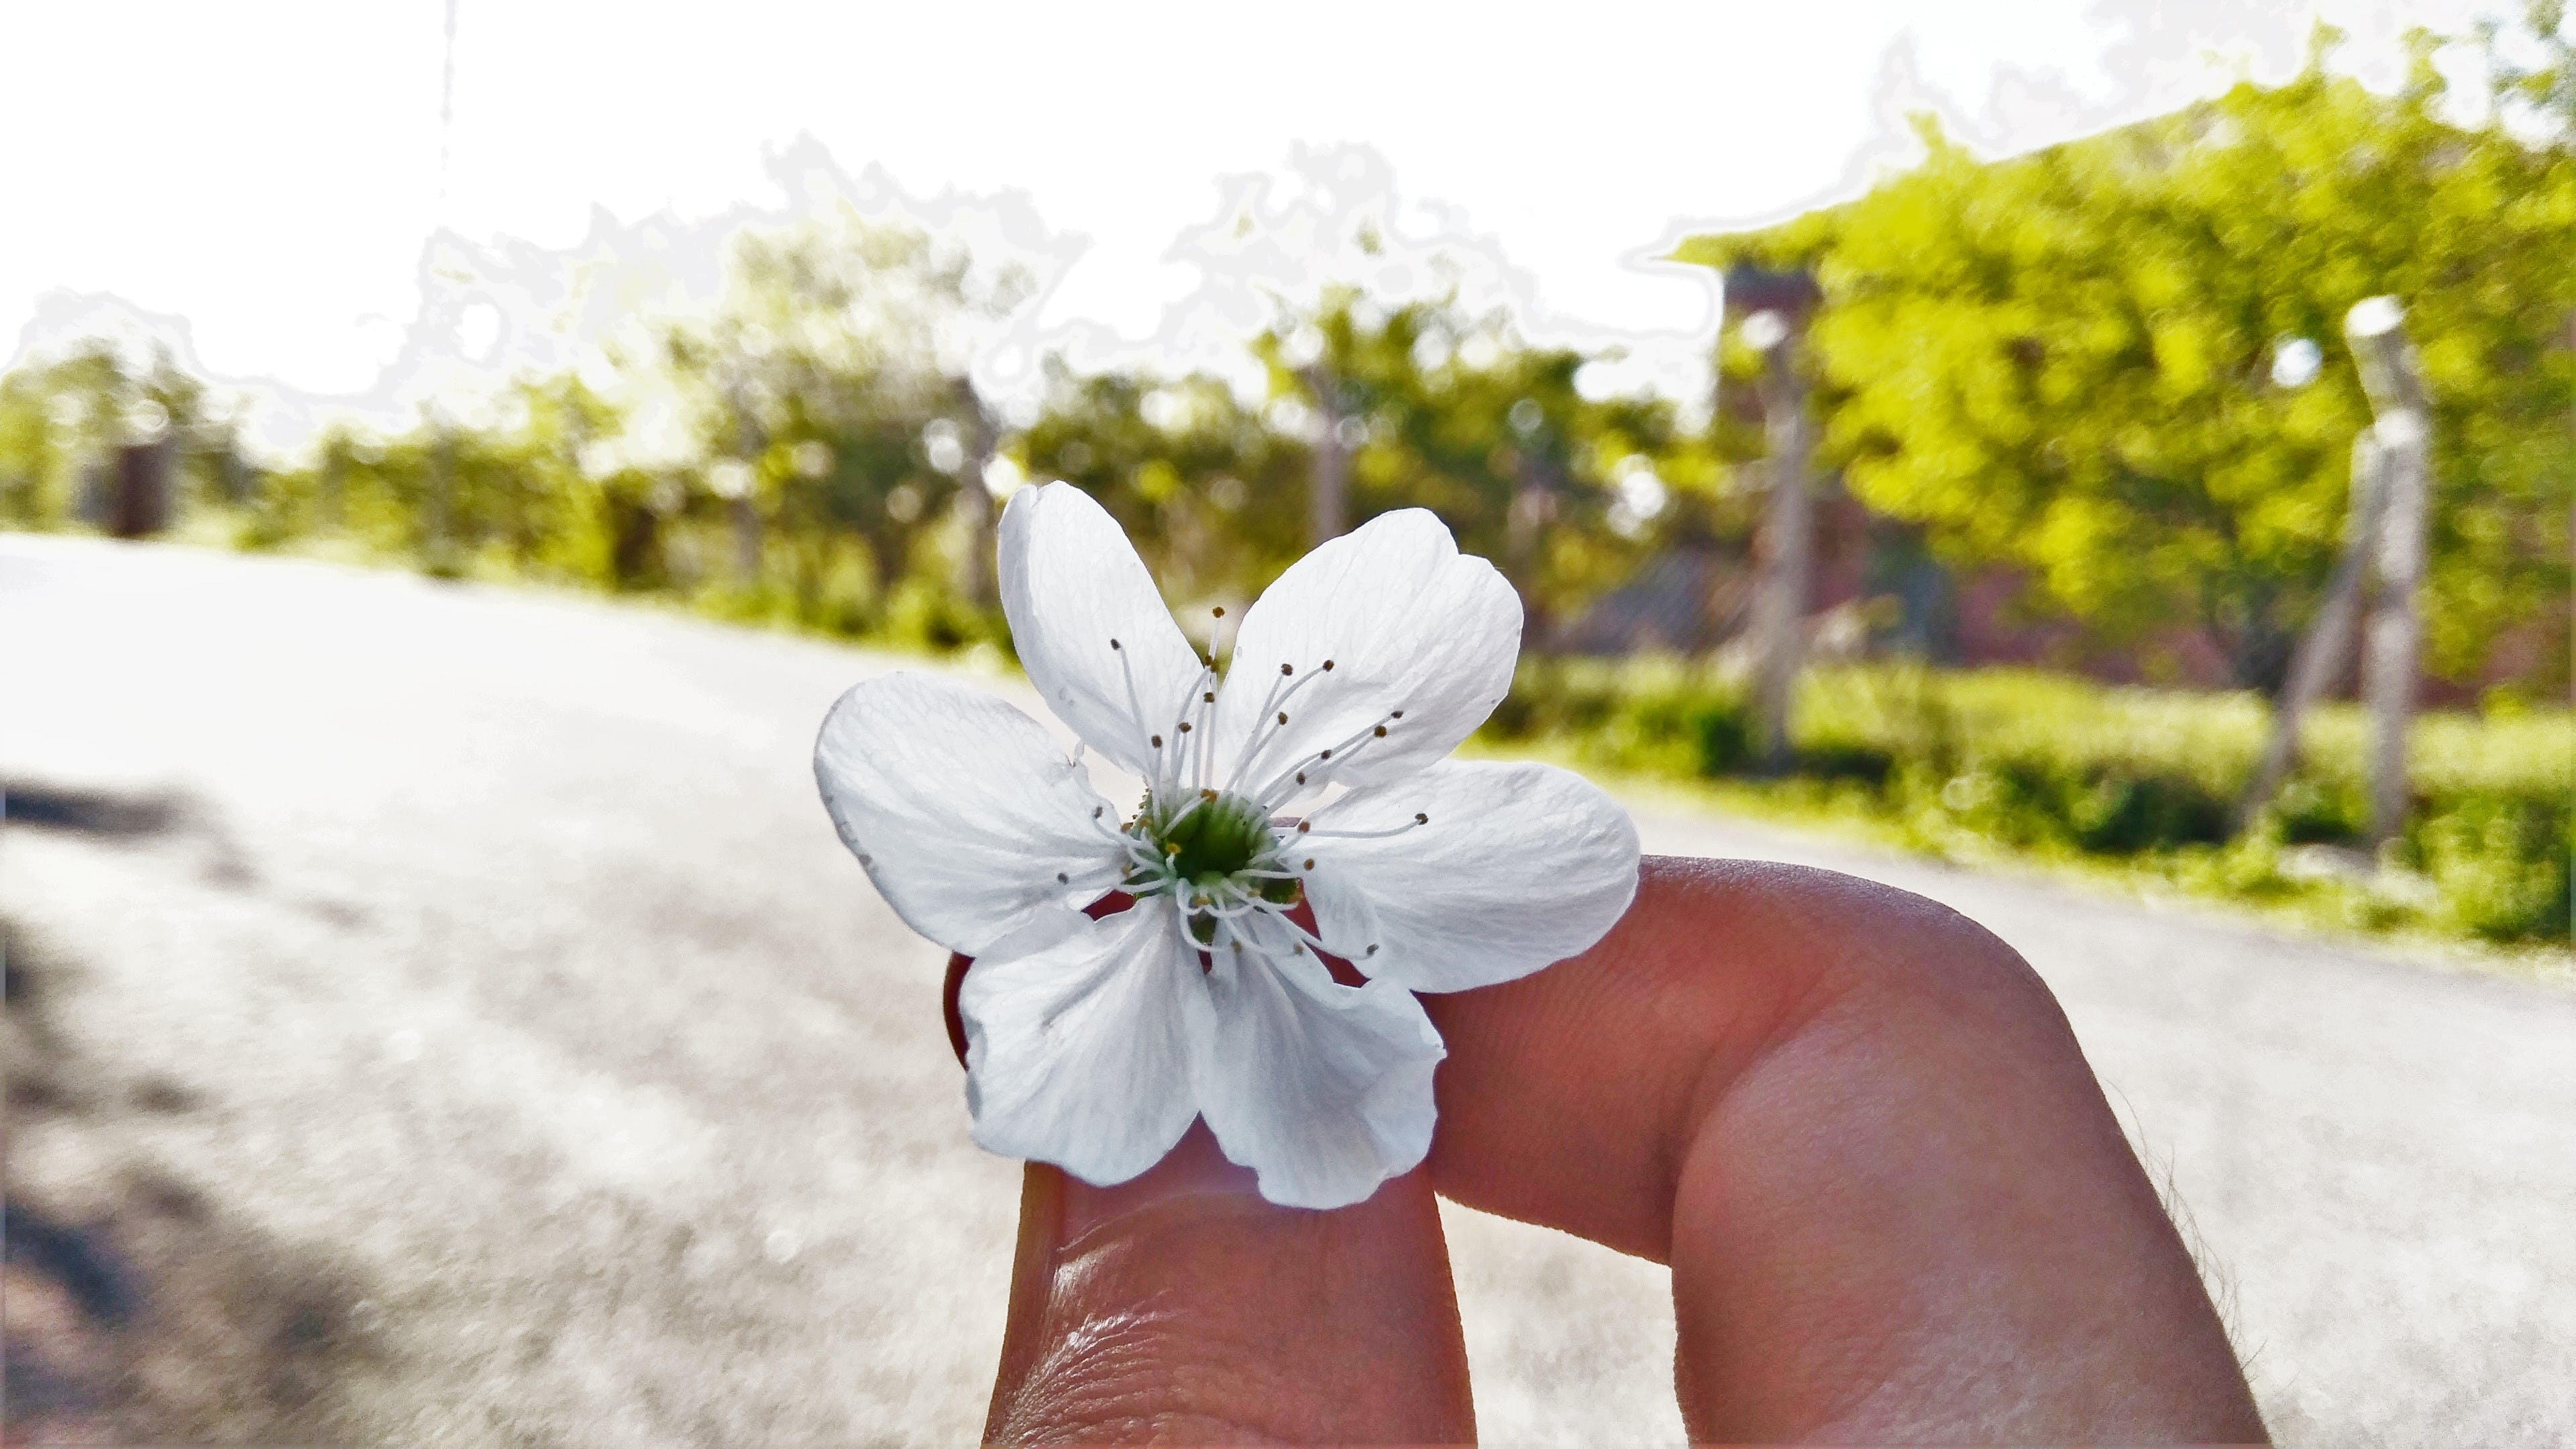 White 6-petaled Flower on Person's Hand